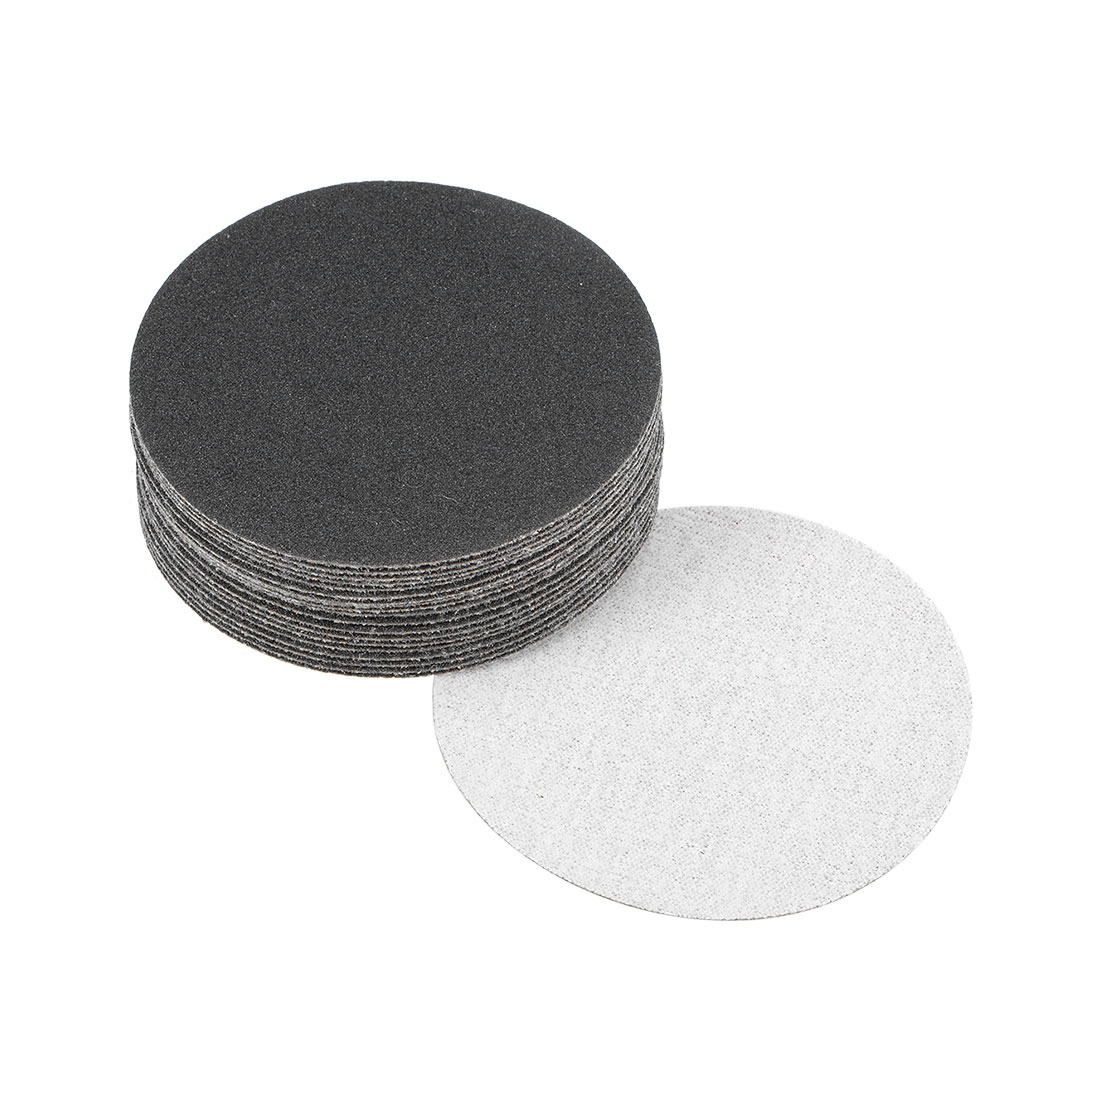 3 inch Wet Dry Discs 150 Grit Hook and Loop Sanding Disc Silicon Carbide 20pcs